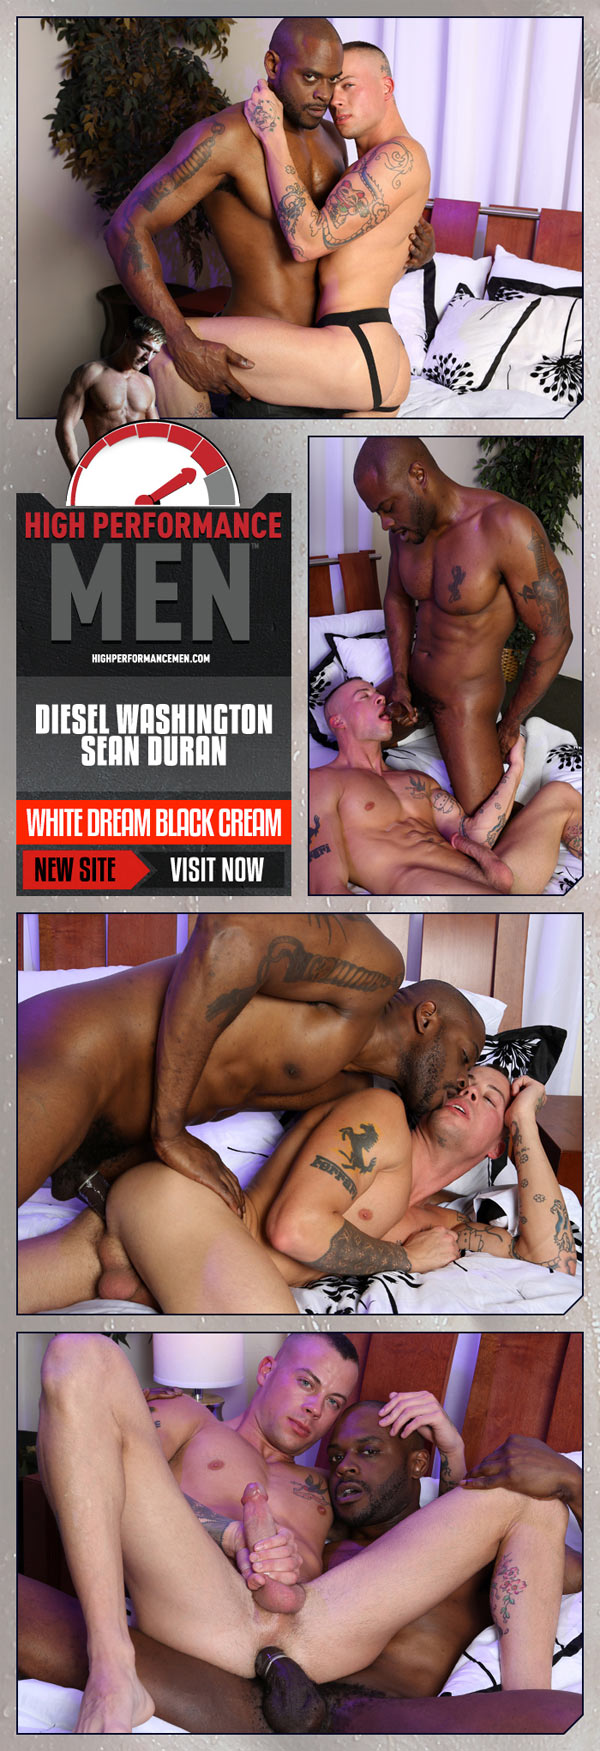 White Dream Black Cream (Diesel Washington & Sean Duran) at High Performance Men